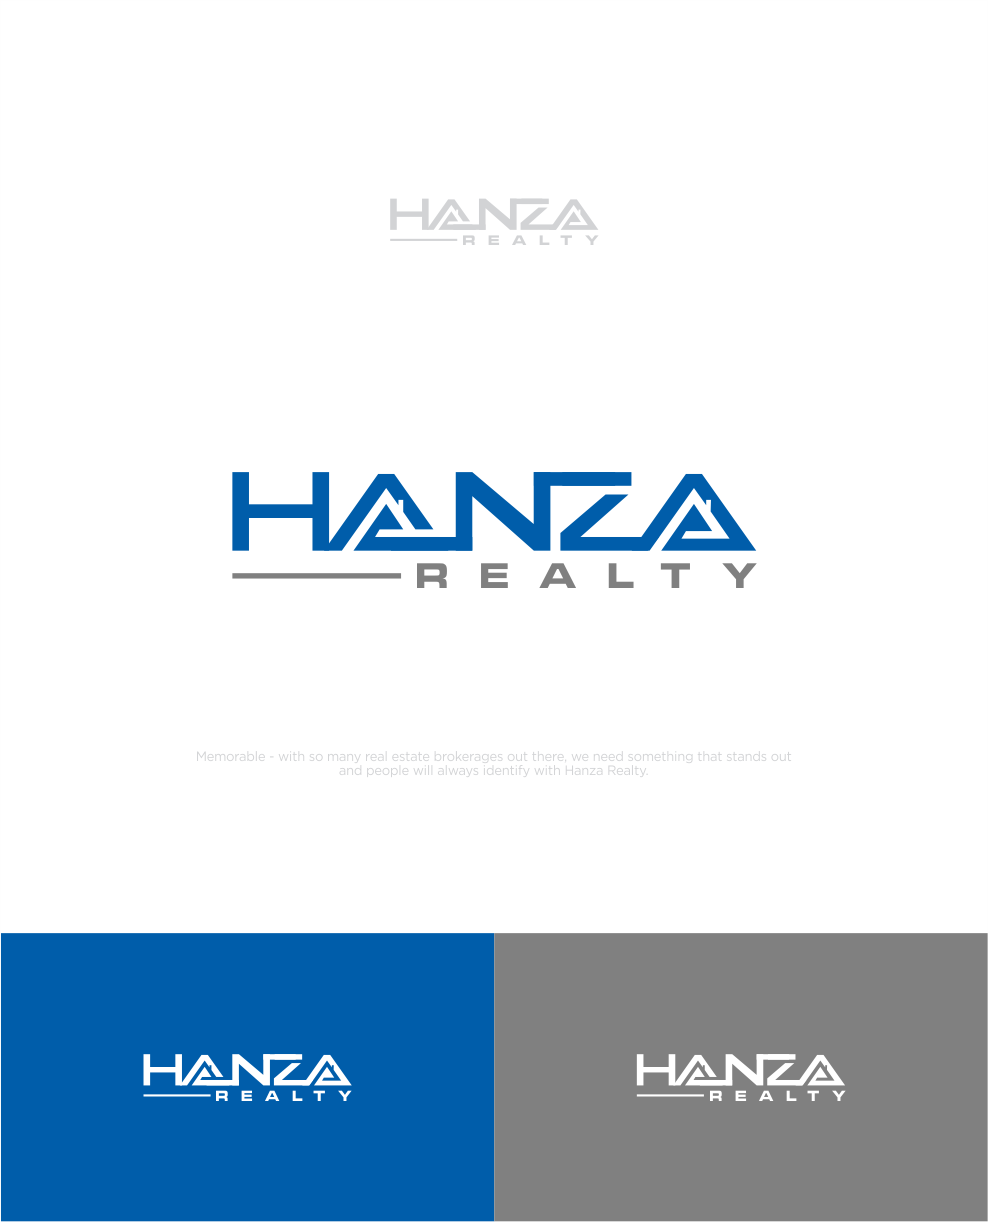 Logo Design by Raymond Garcia - Entry No. 163 in the Logo Design Contest Logo Design for Hanza Realty.